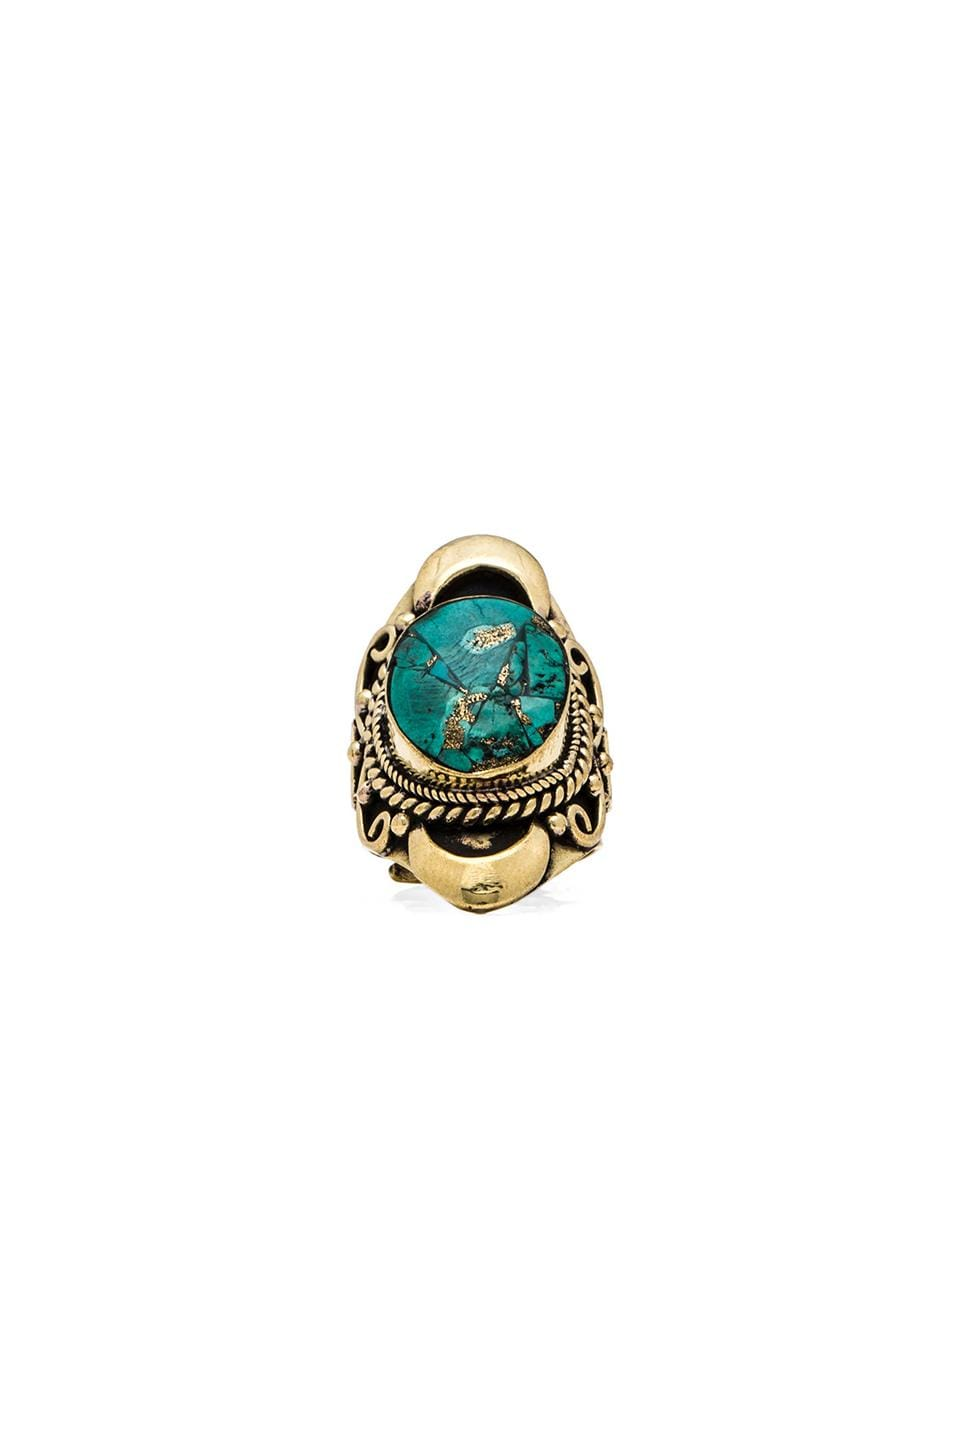 Natalie B Jewelry Kelsey Ring in Turquoise